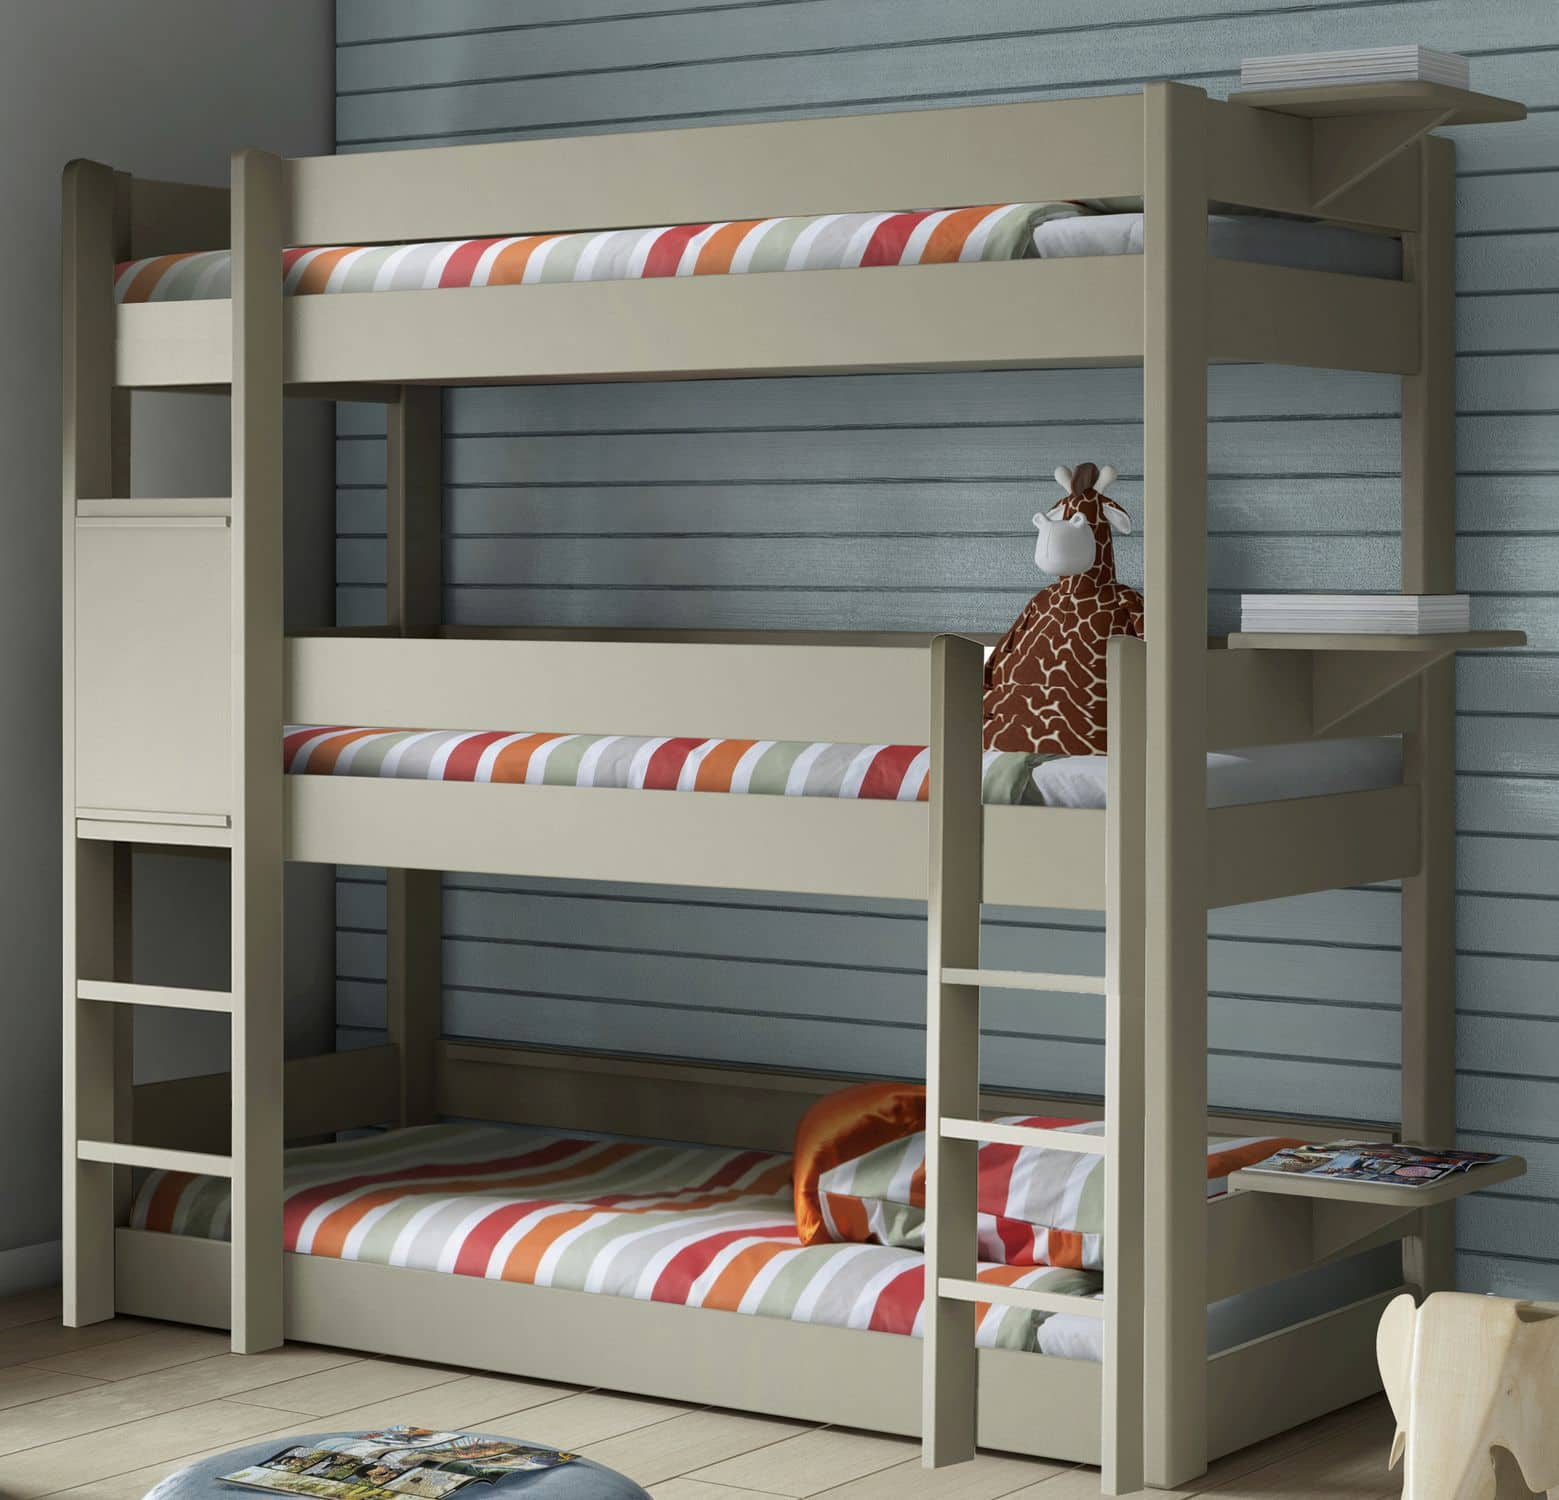 Bedroom Shelf Designs